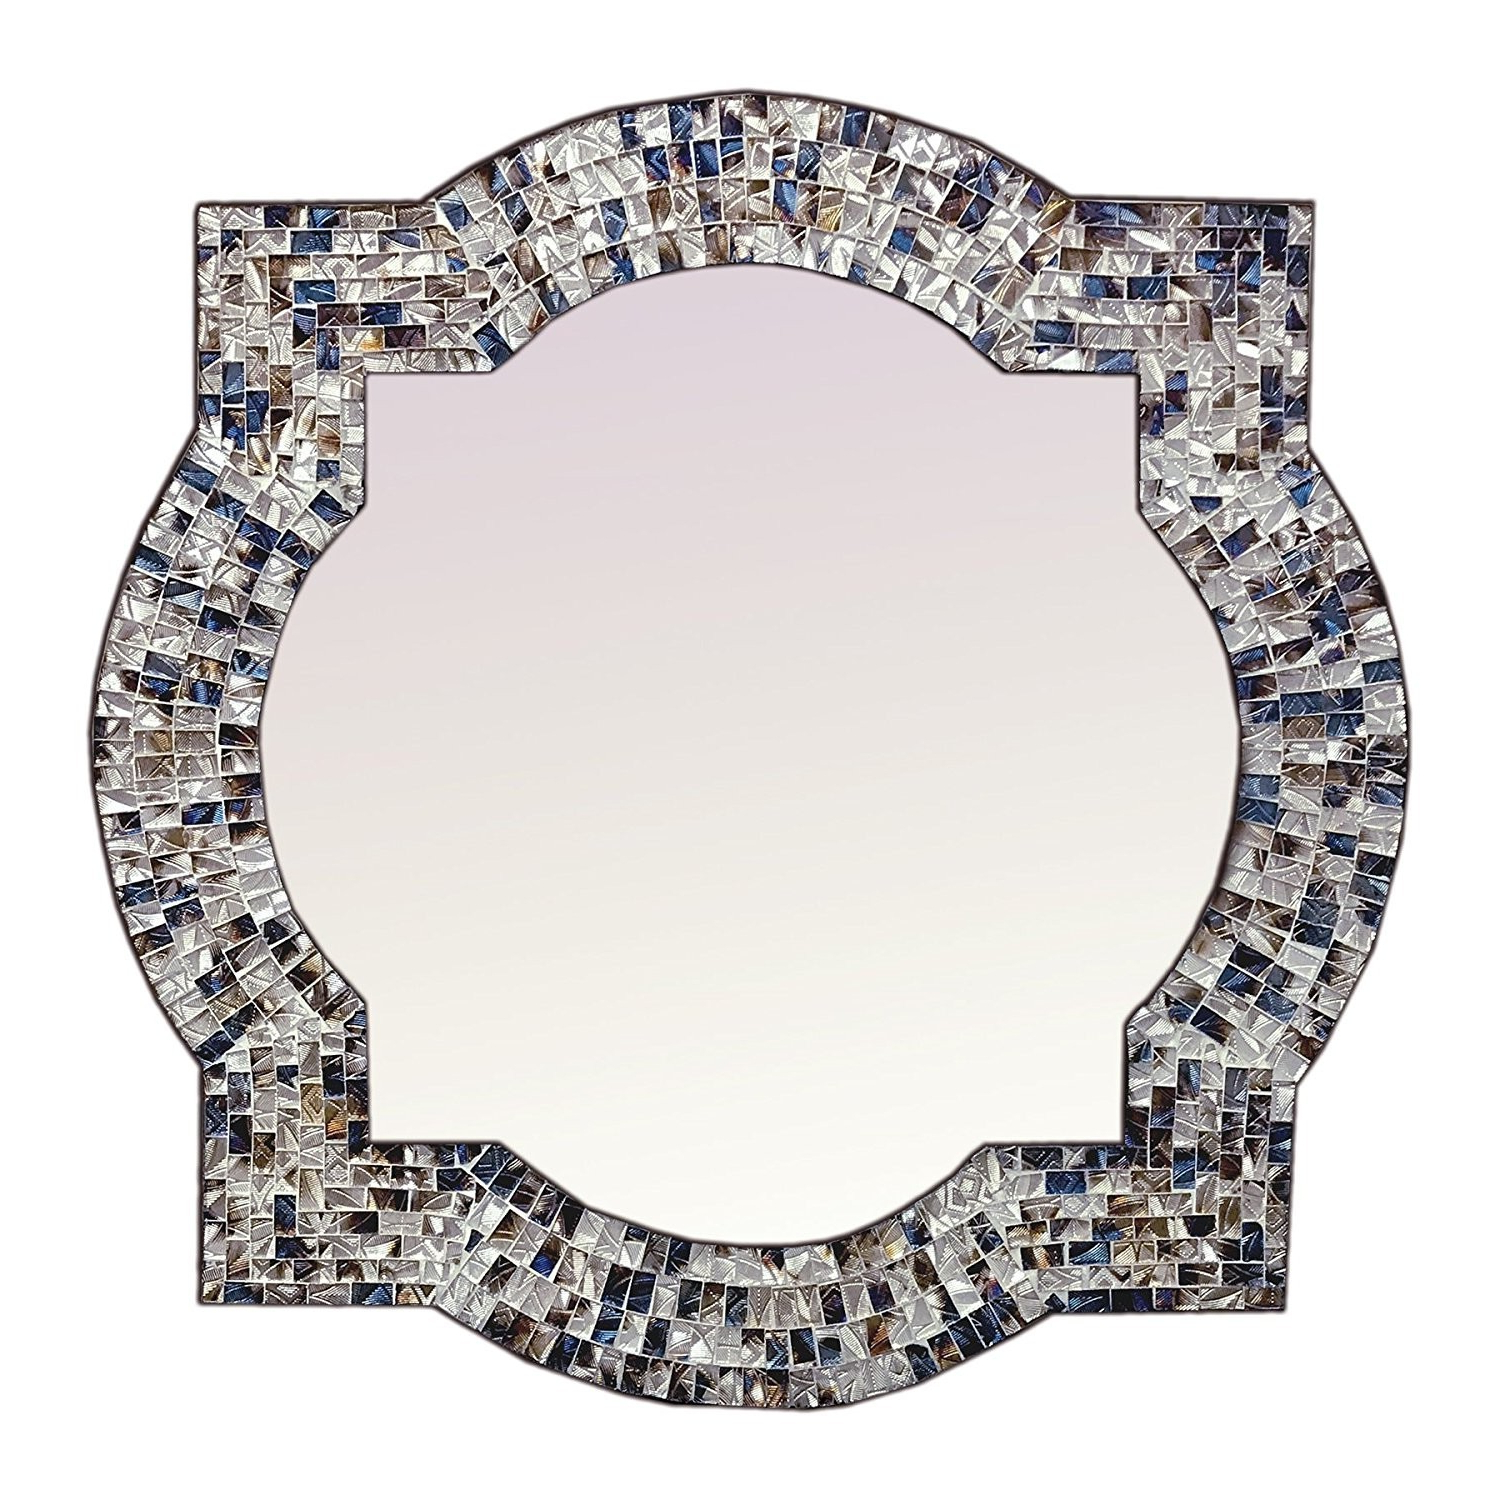 """Widely Used Mosaic Wall Mirrors For Andalusian Quatrefoil Mirror, Lindaraja Designer Mosaic Glass Framed Wall  Mirror, 24""""x24"""" Colorful Wall Mirror (Multi Silver) (View 20 of 20)"""